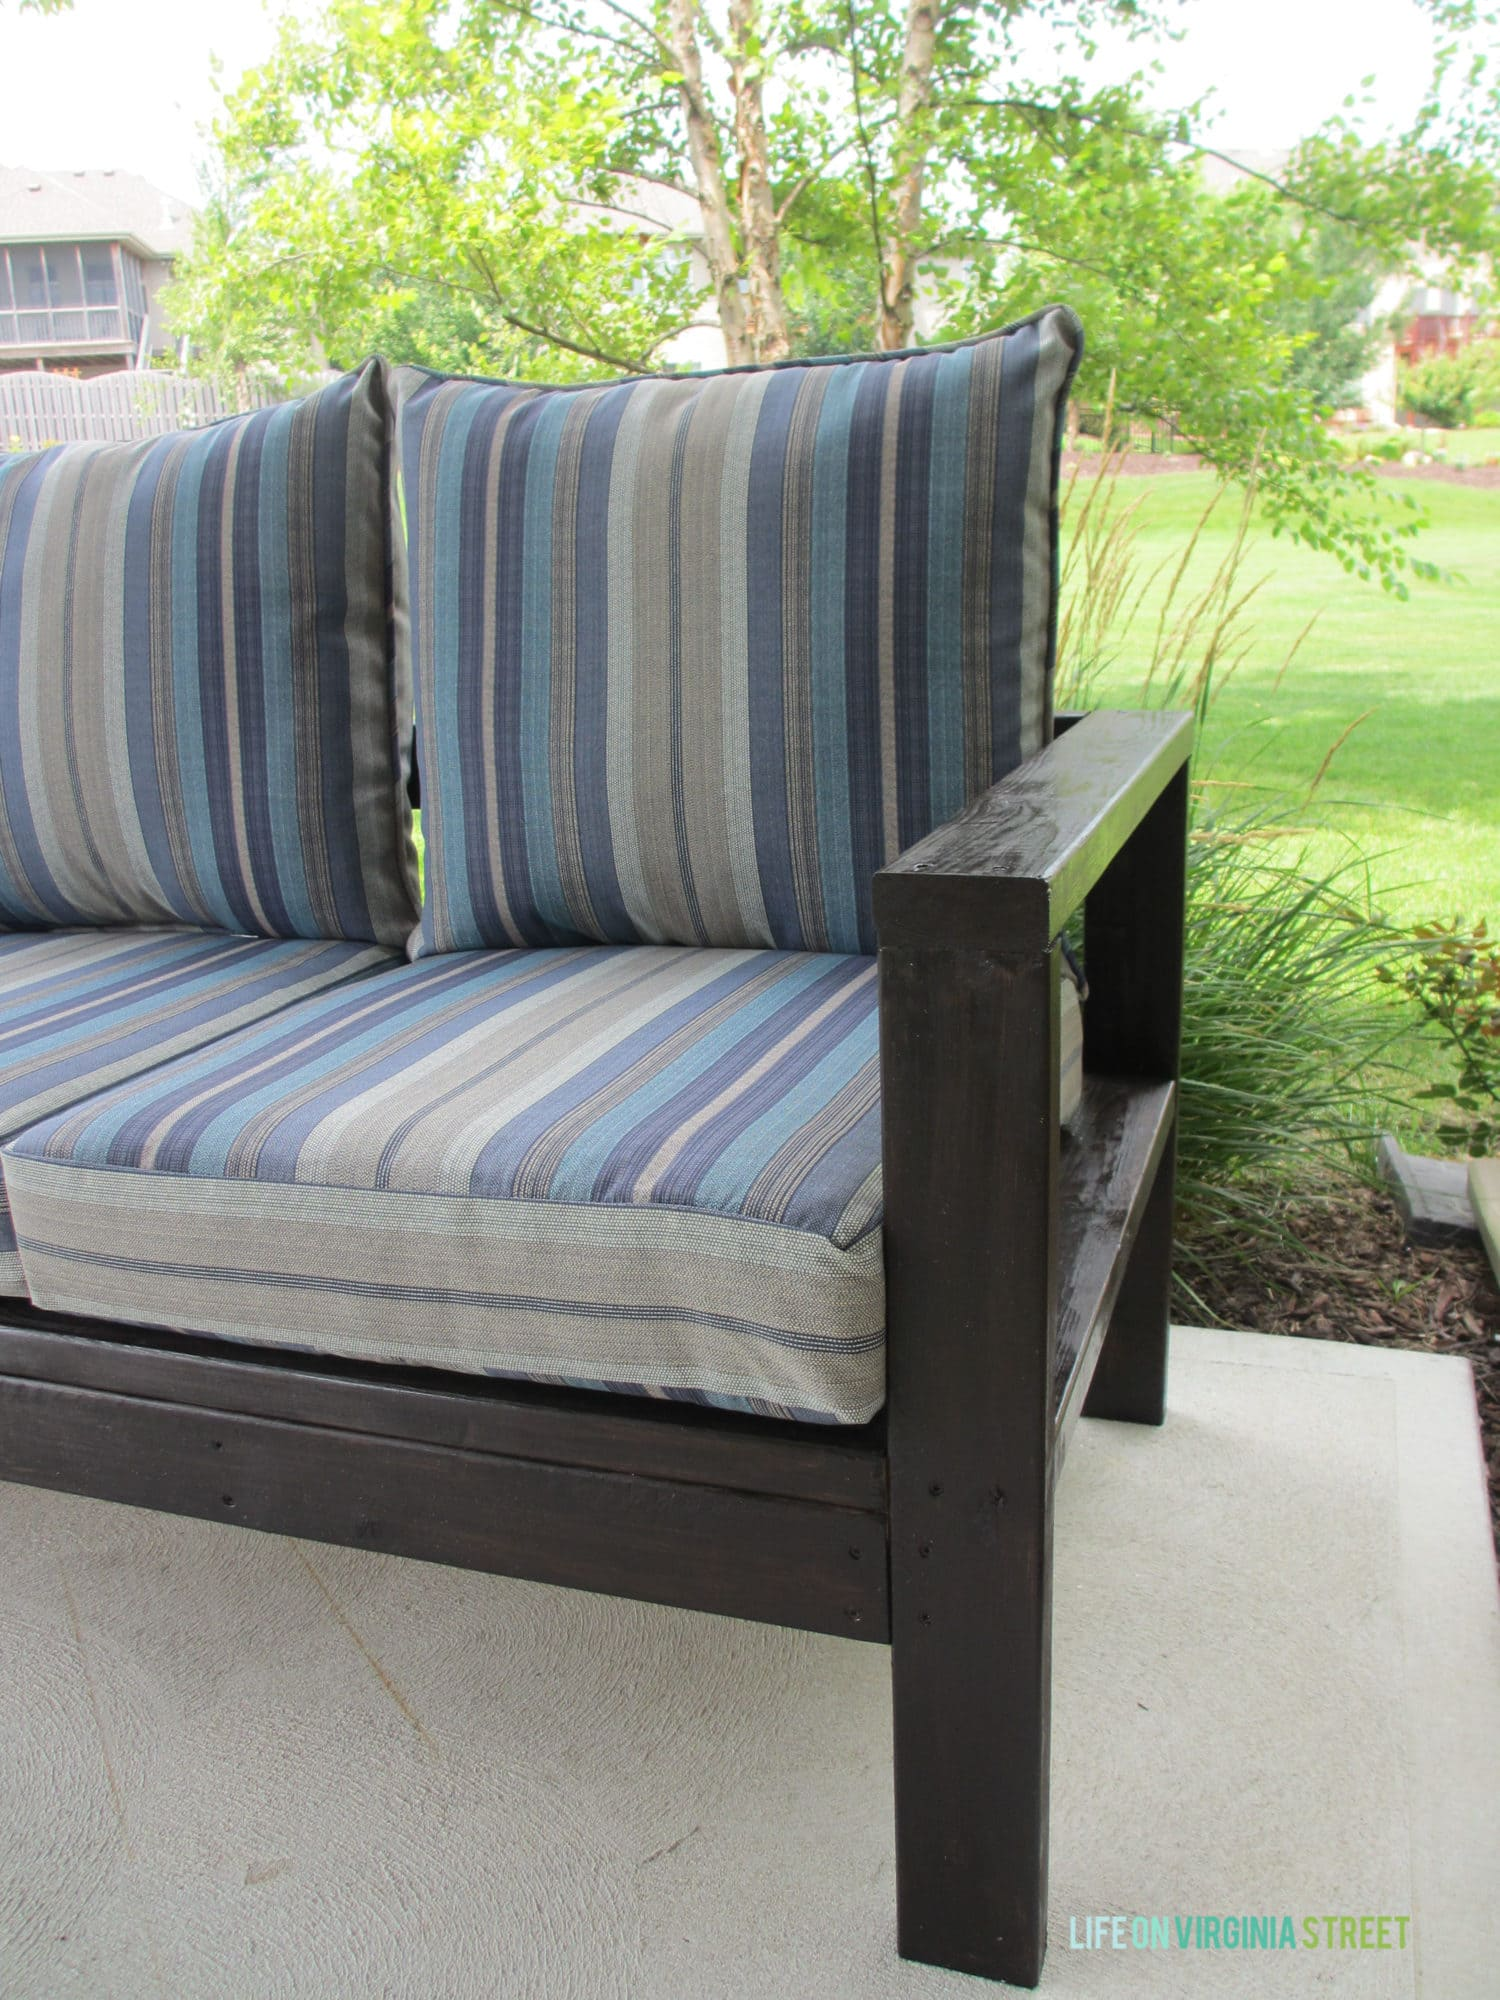 Diy outdoor sofa - Diy Outdoor Couch Final